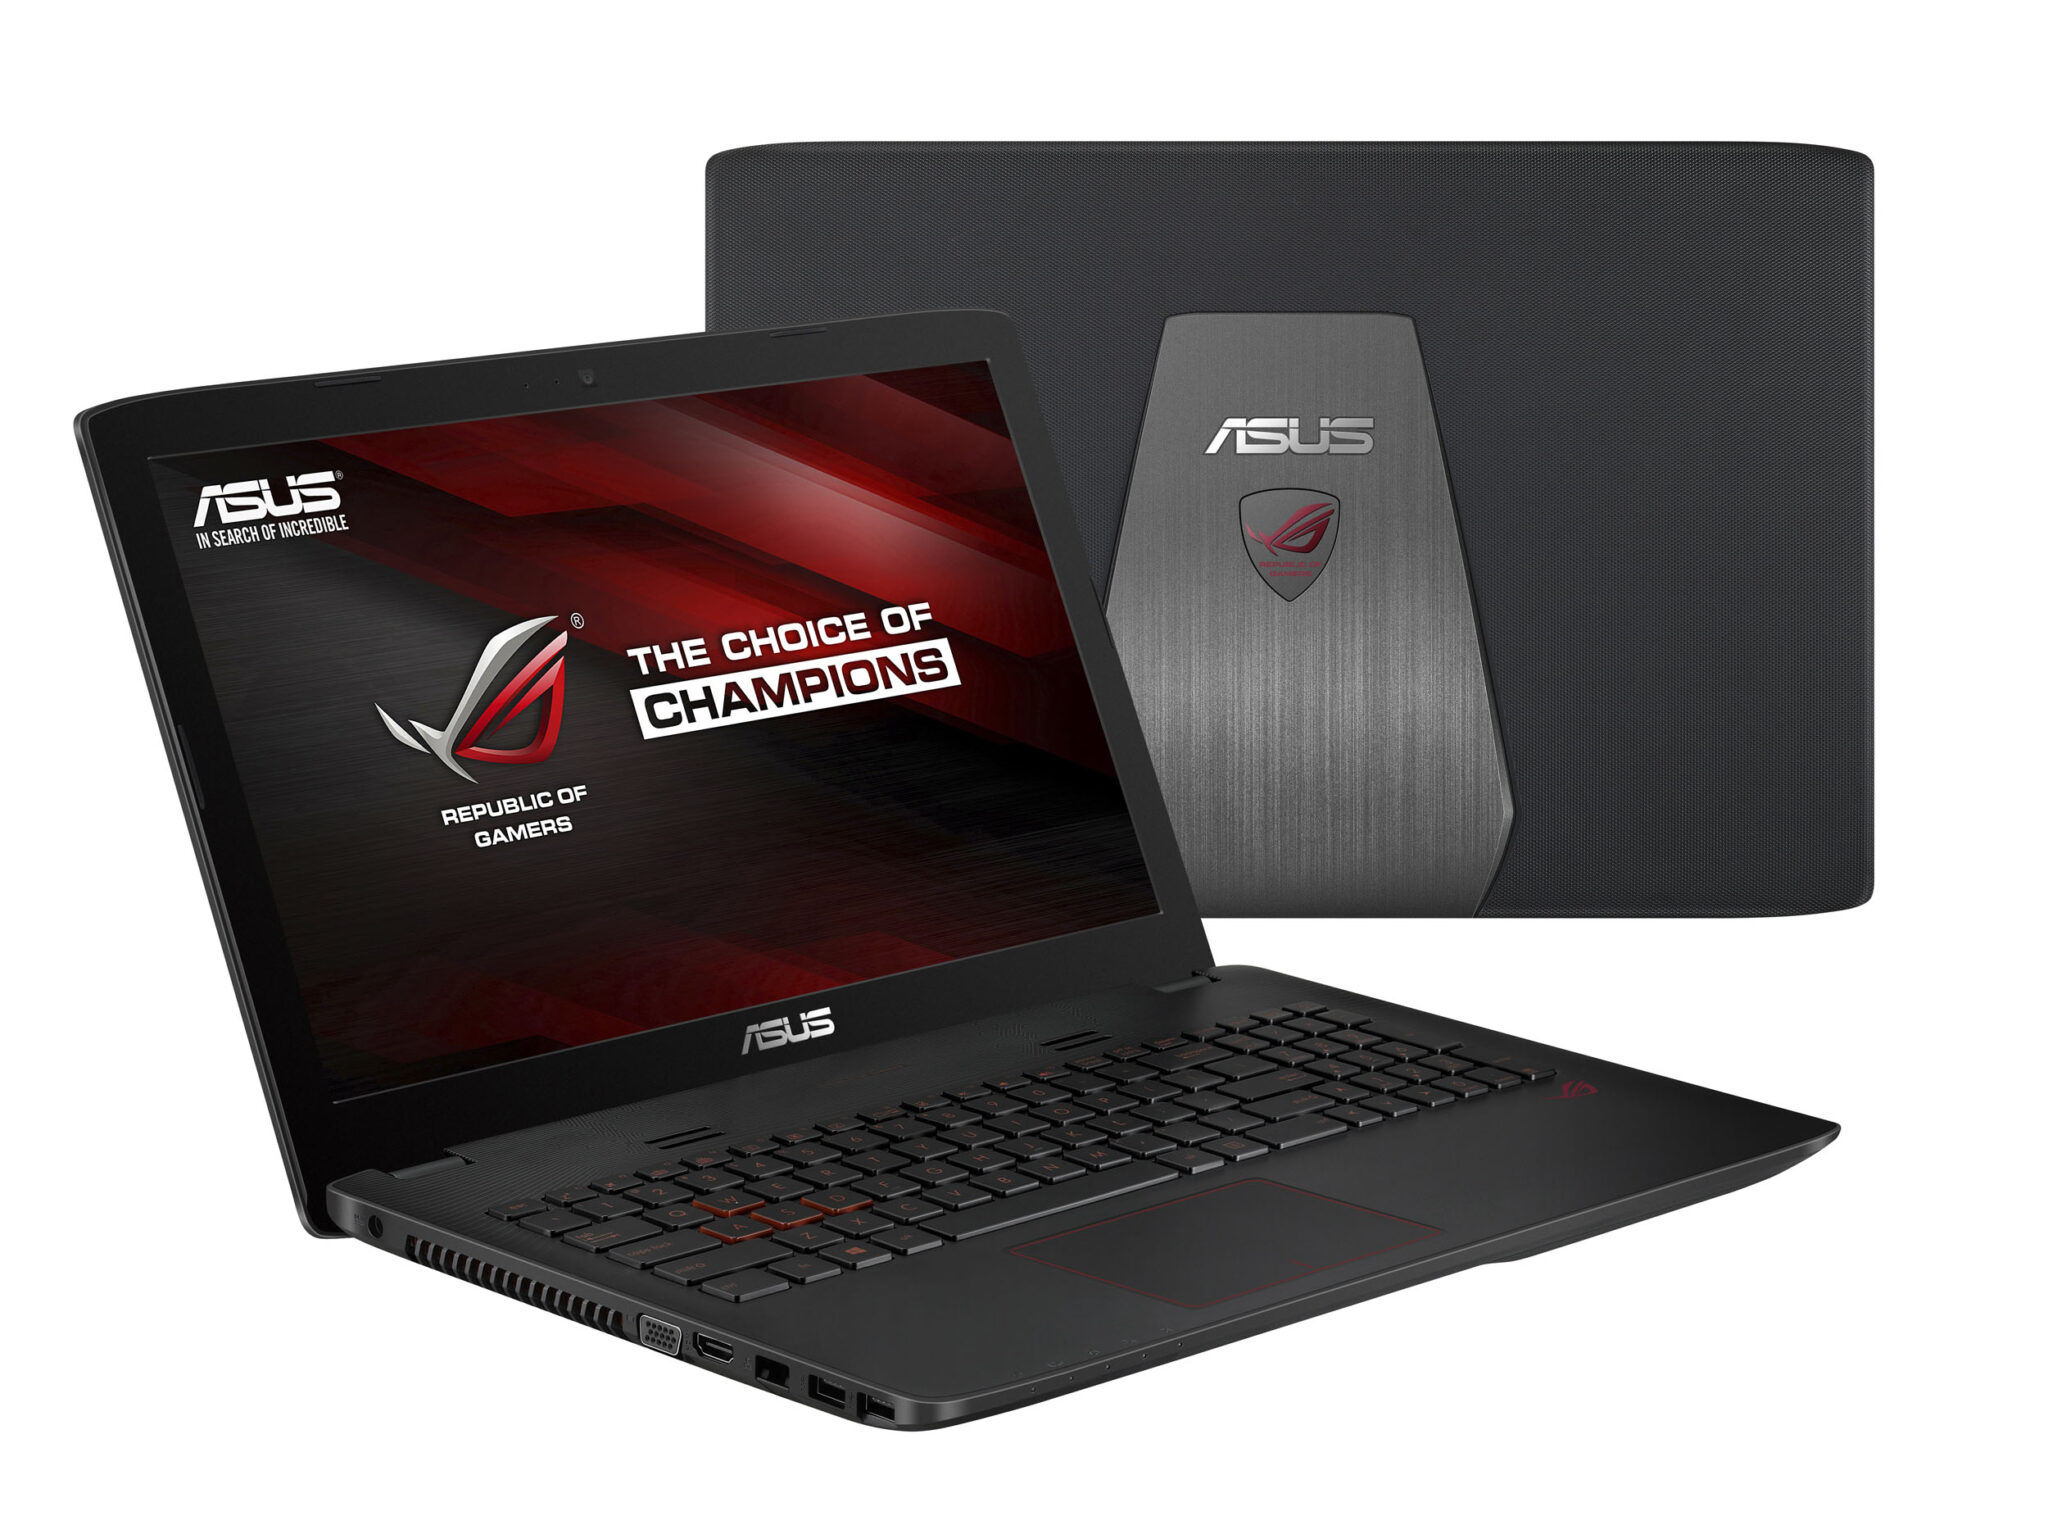 ASUS ROG GL552JX Gaming Notebook